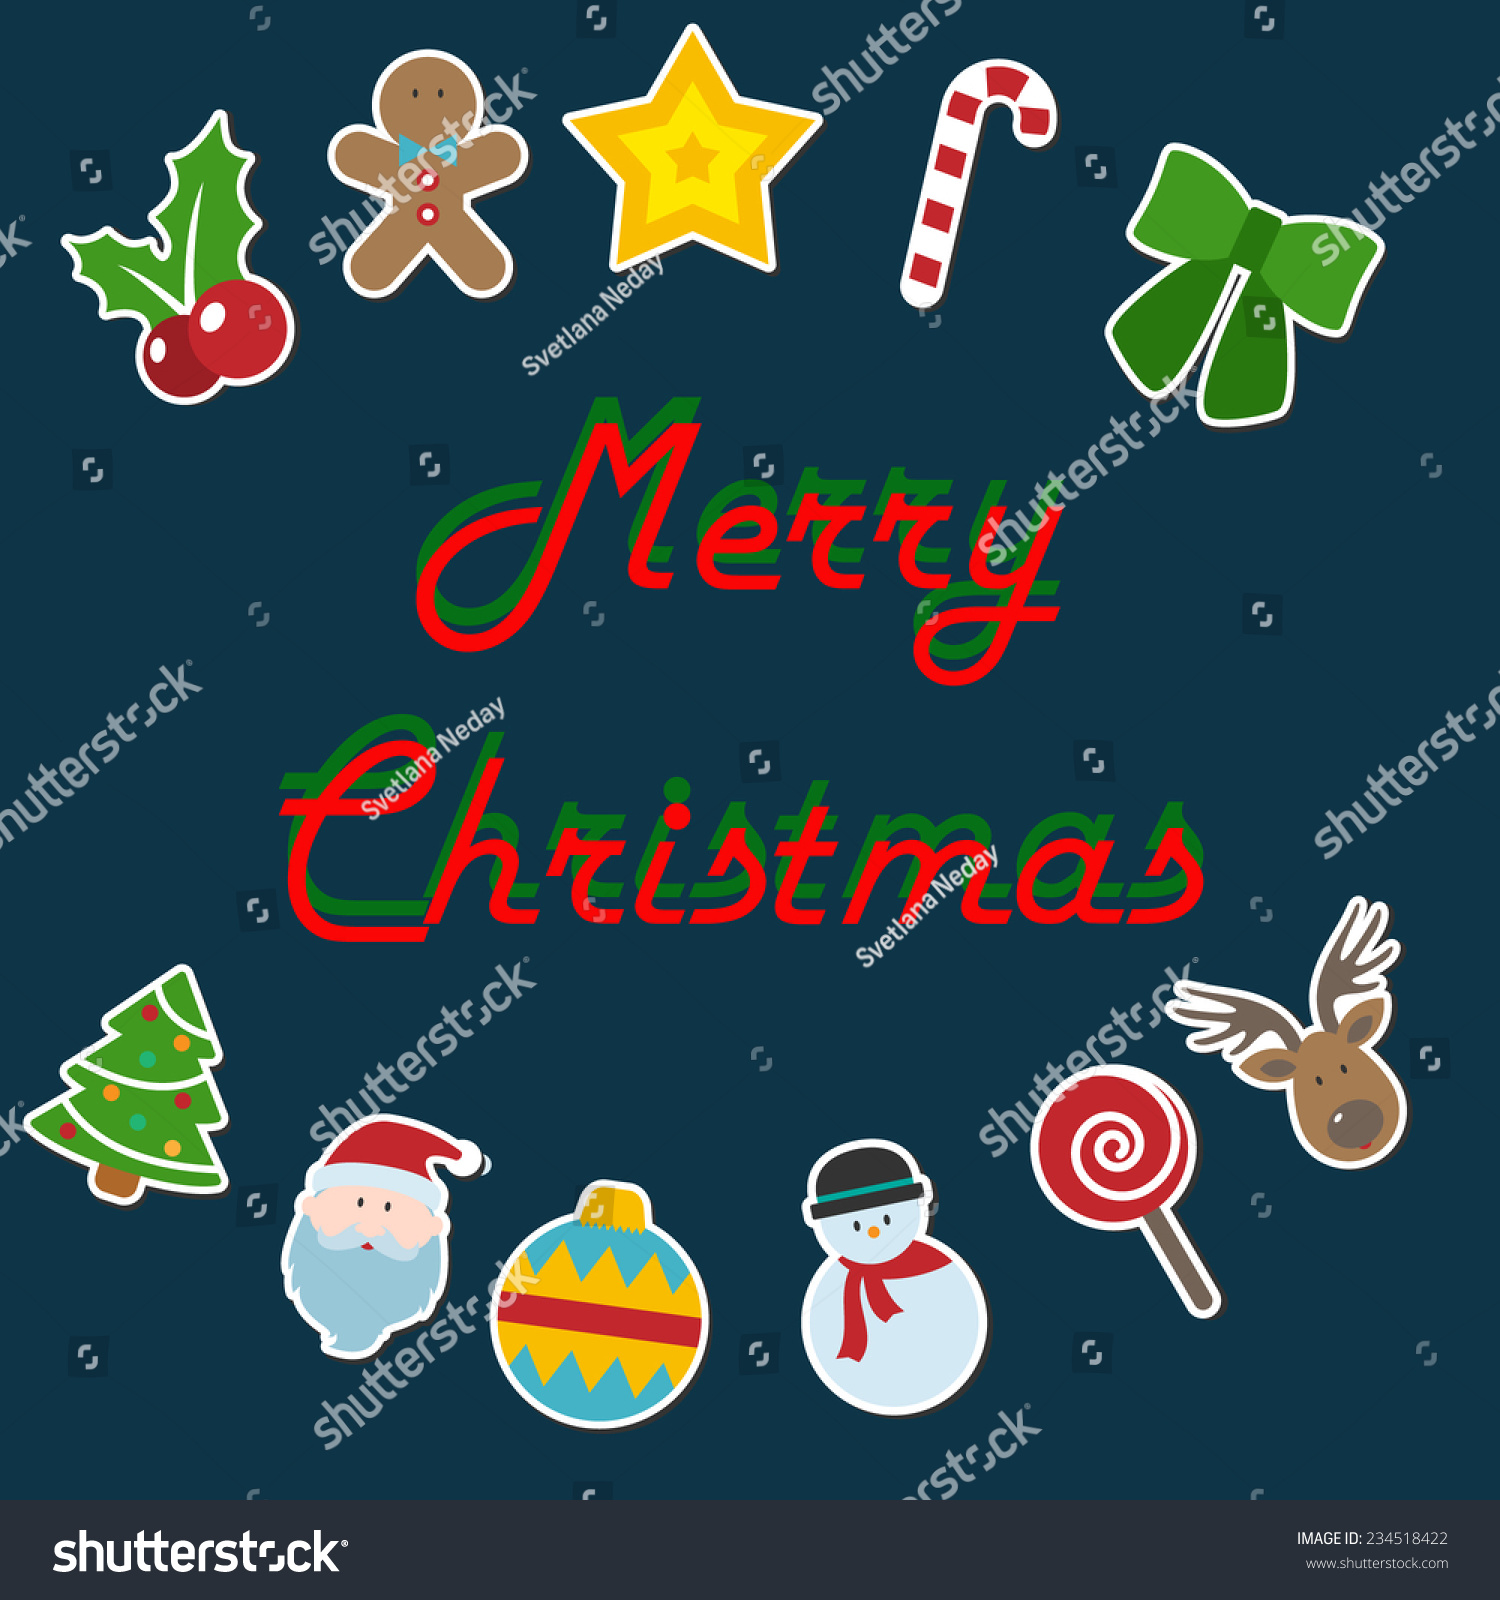 Greeting card christmas card santa claus stock vector 234518422 greeting card christmas card with santa claus deer and other christmas characters kristyandbryce Choice Image